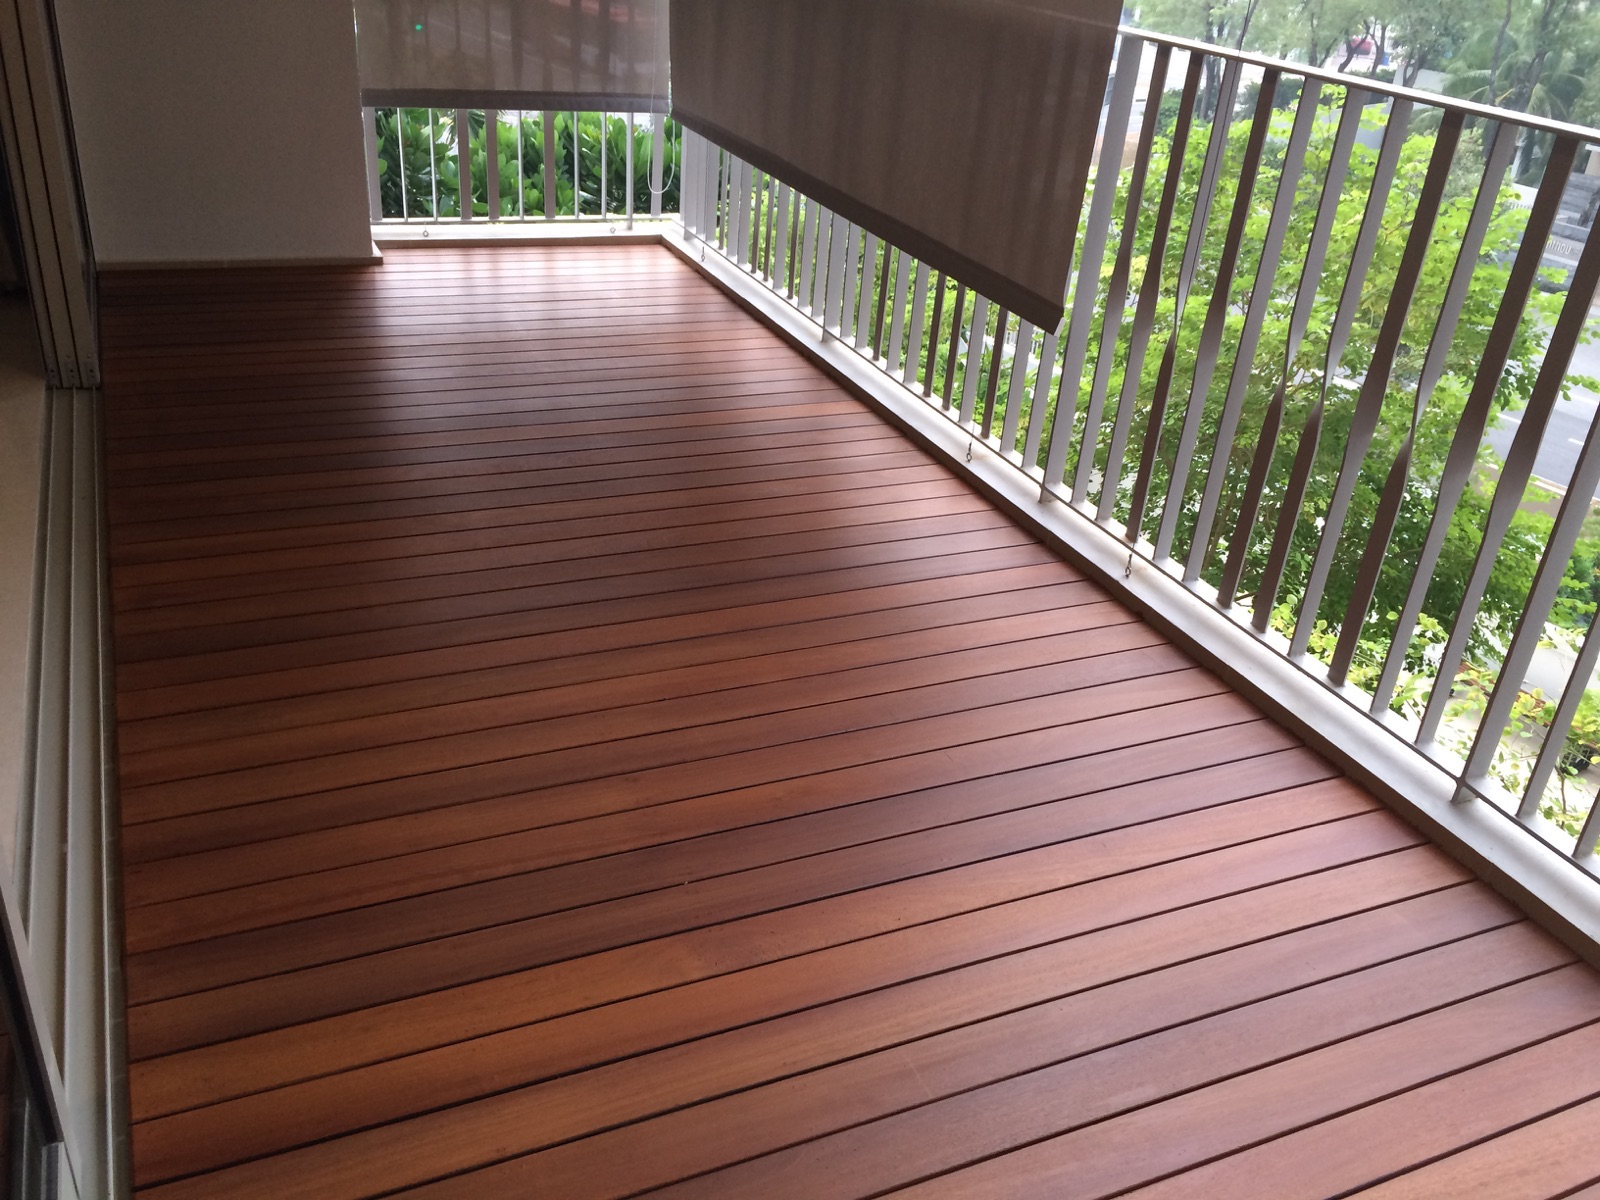 Balcony Decking In Singapore Picking The Best Material